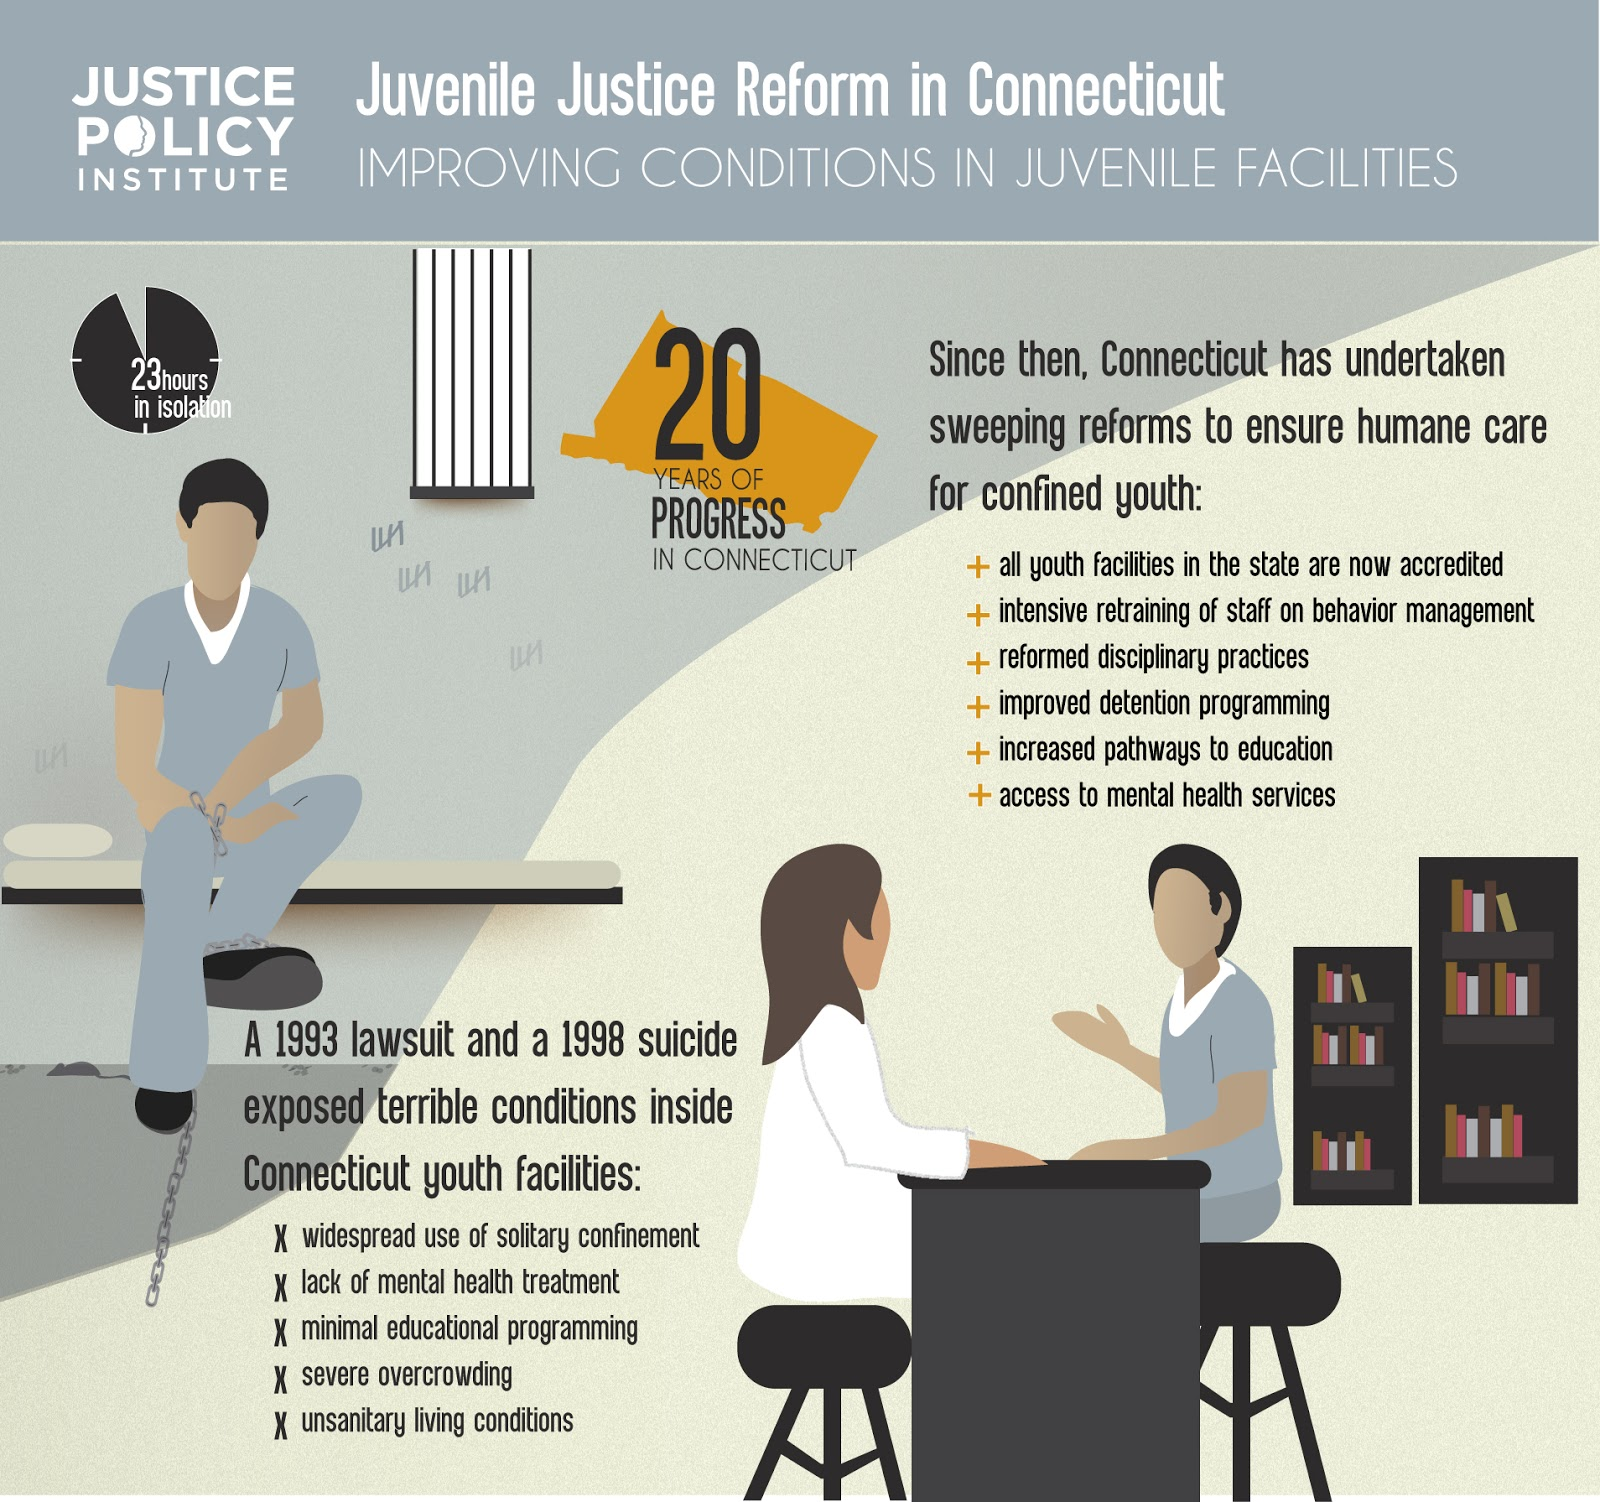 juvenile justice reform in india The juvenile justice (care and protection of children) amendment bill 2015 has been passed by the rajya sabha today it was introduced in parliament last year after.